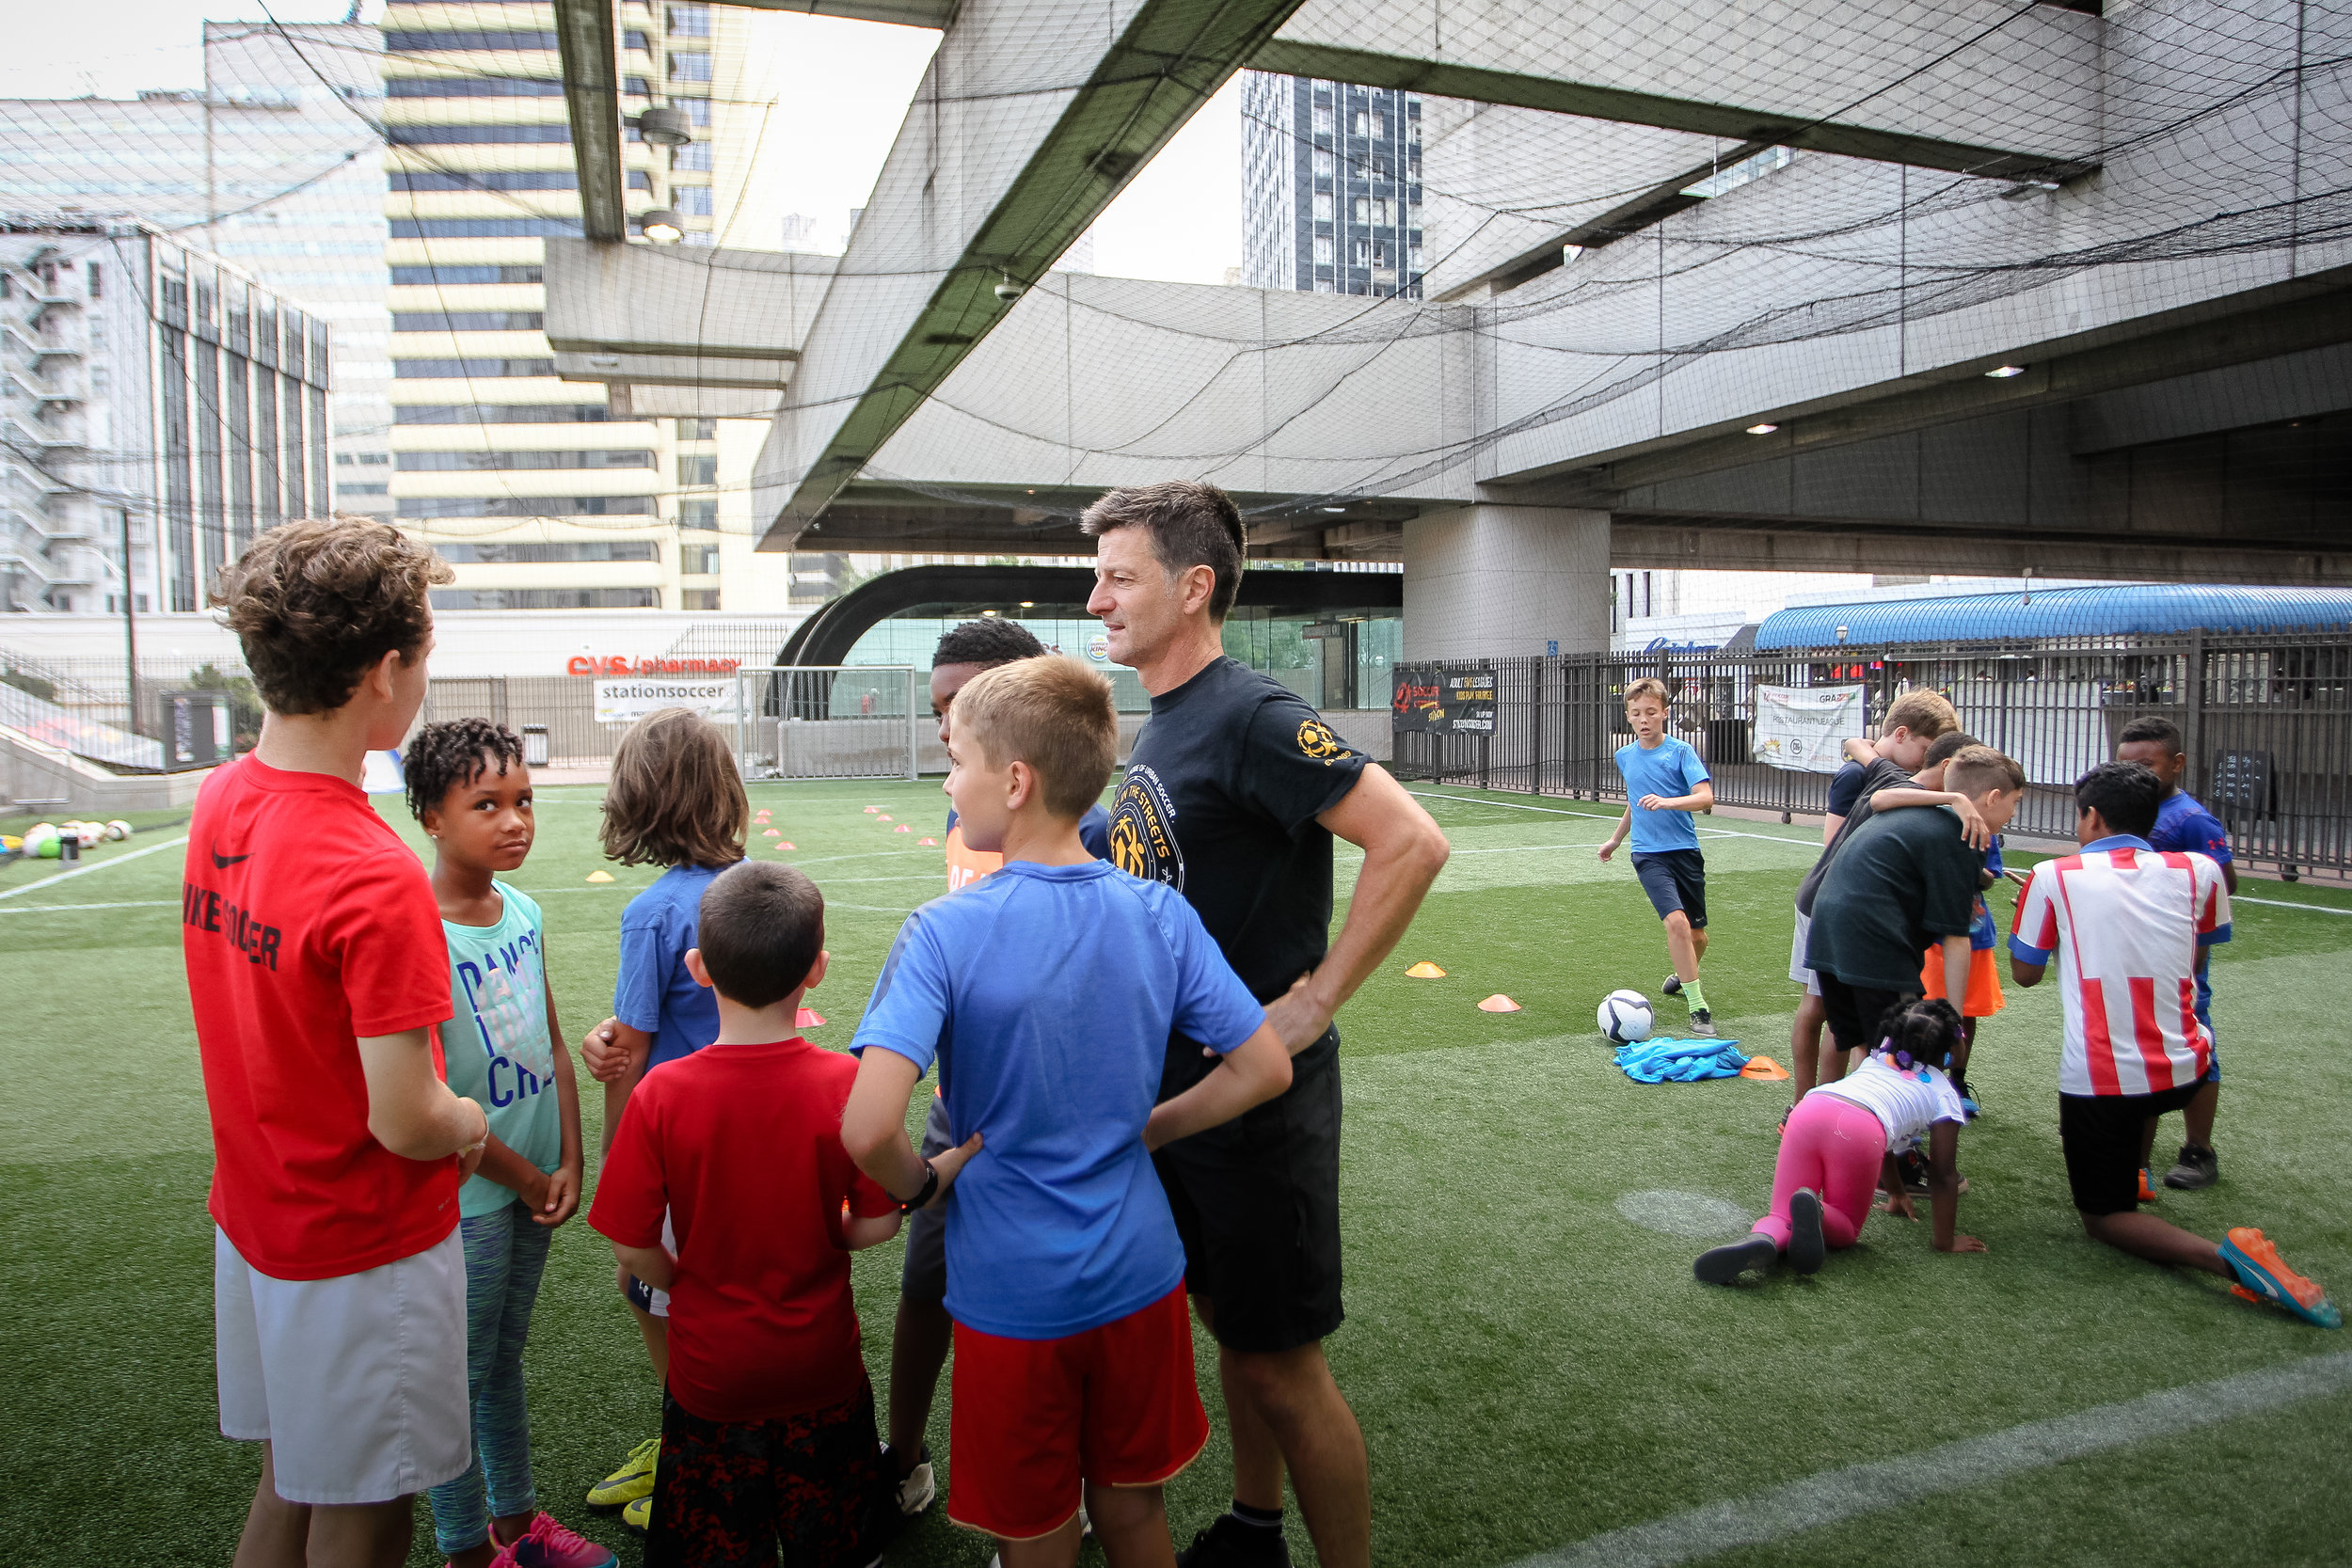 The Grant is Set to Fund Innovative and Non-Traditional Soccer Programming at Station Soccer